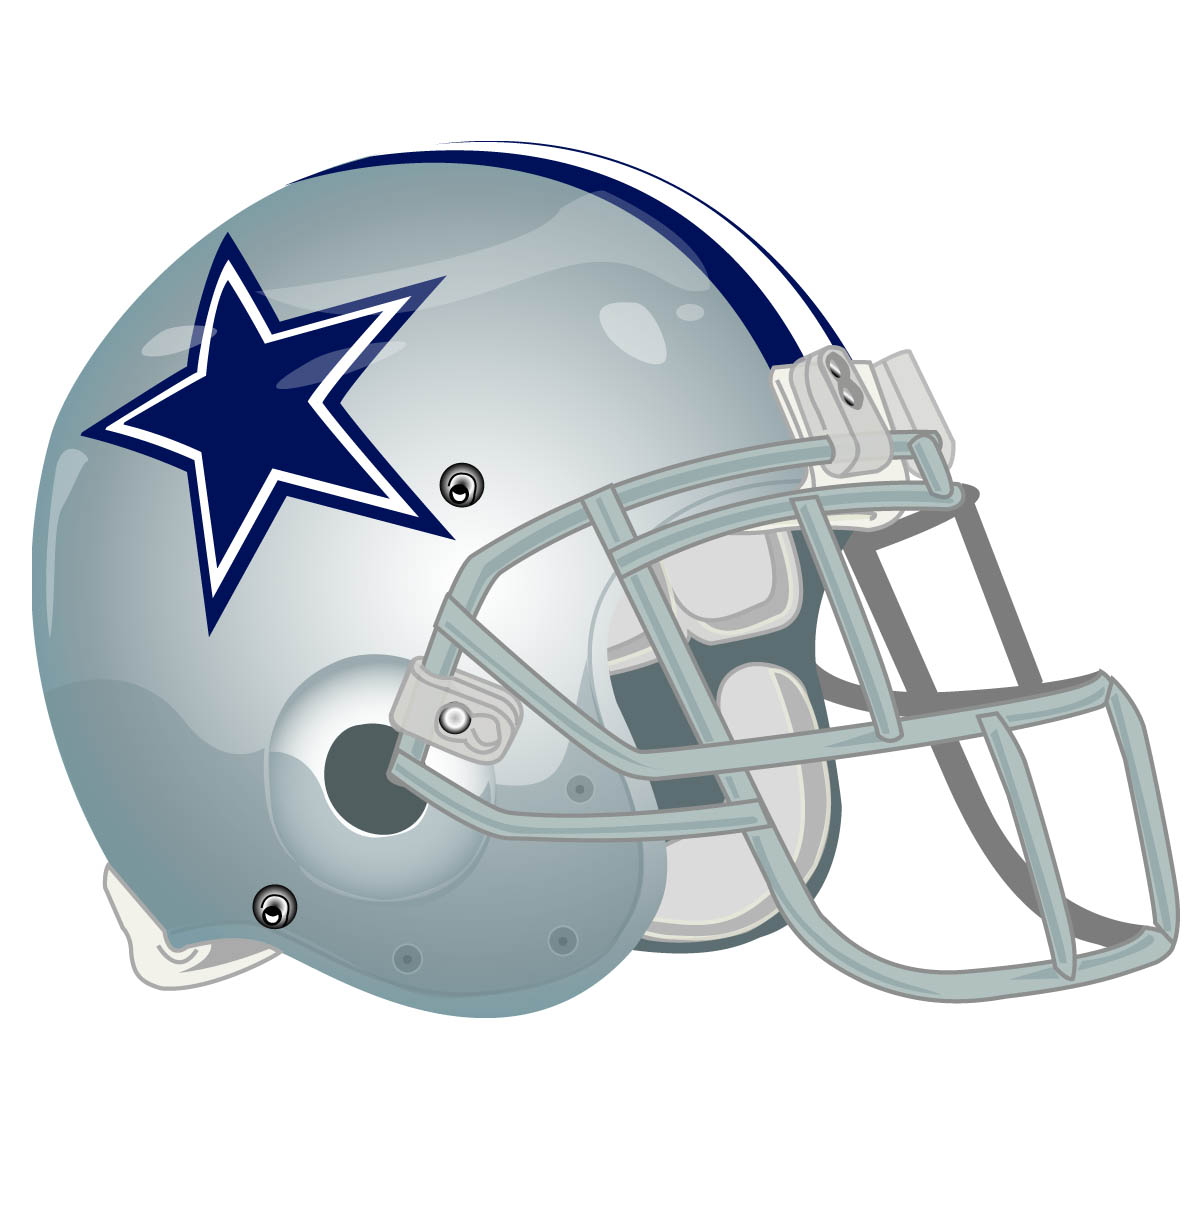 Dallas Cowboys Helmet Photos And Wallpapers Free Download